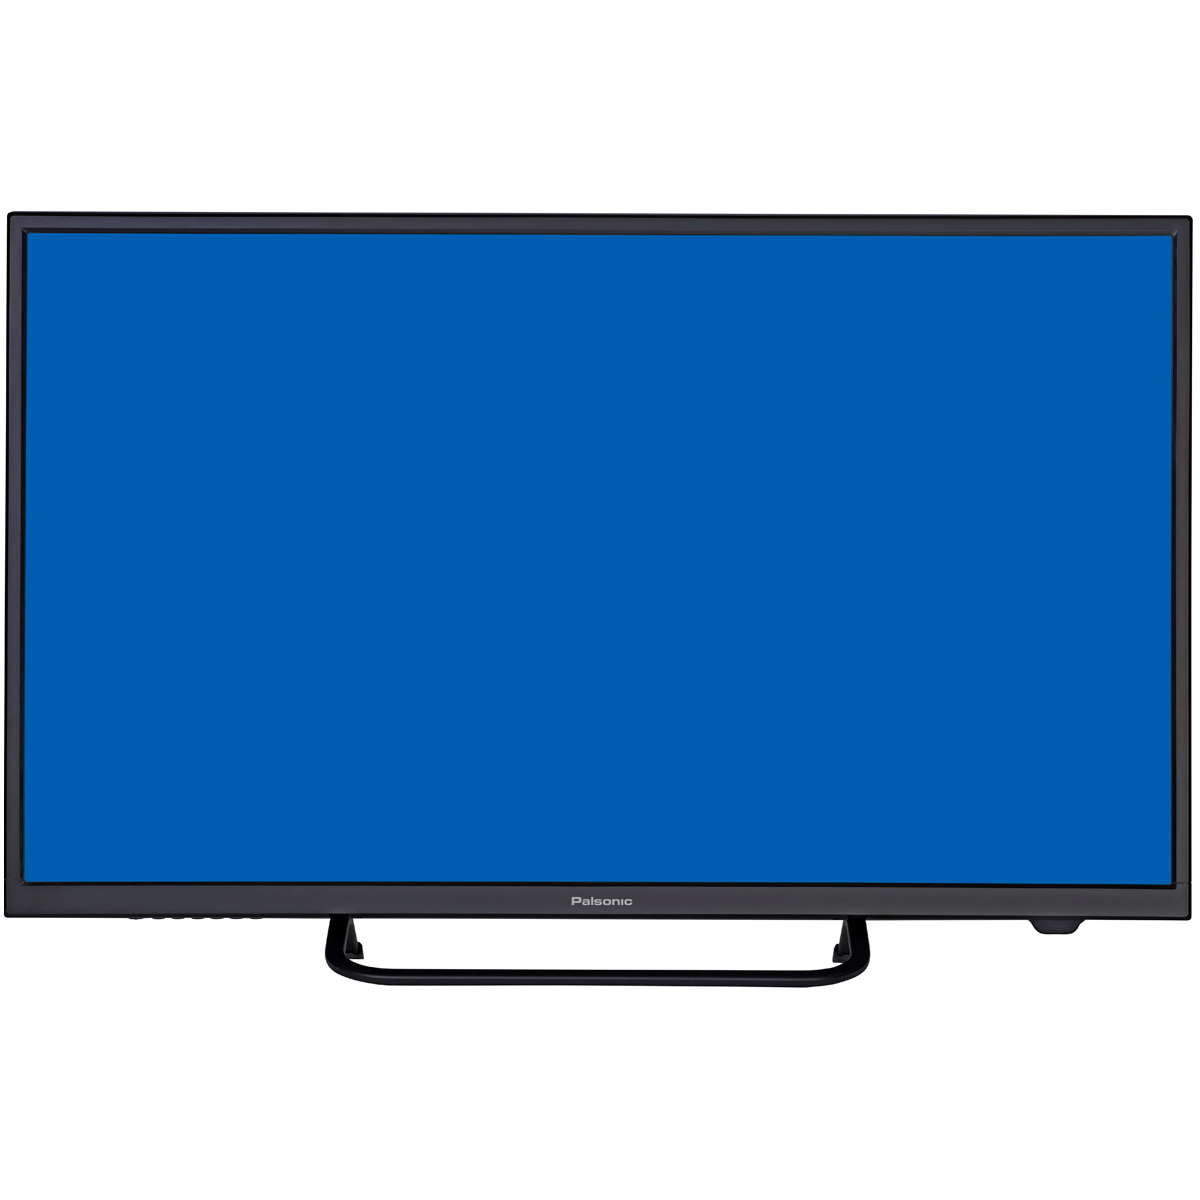 palsonic tftv805led 31 5 inch 80cm led lcd tv home clearance. Black Bedroom Furniture Sets. Home Design Ideas